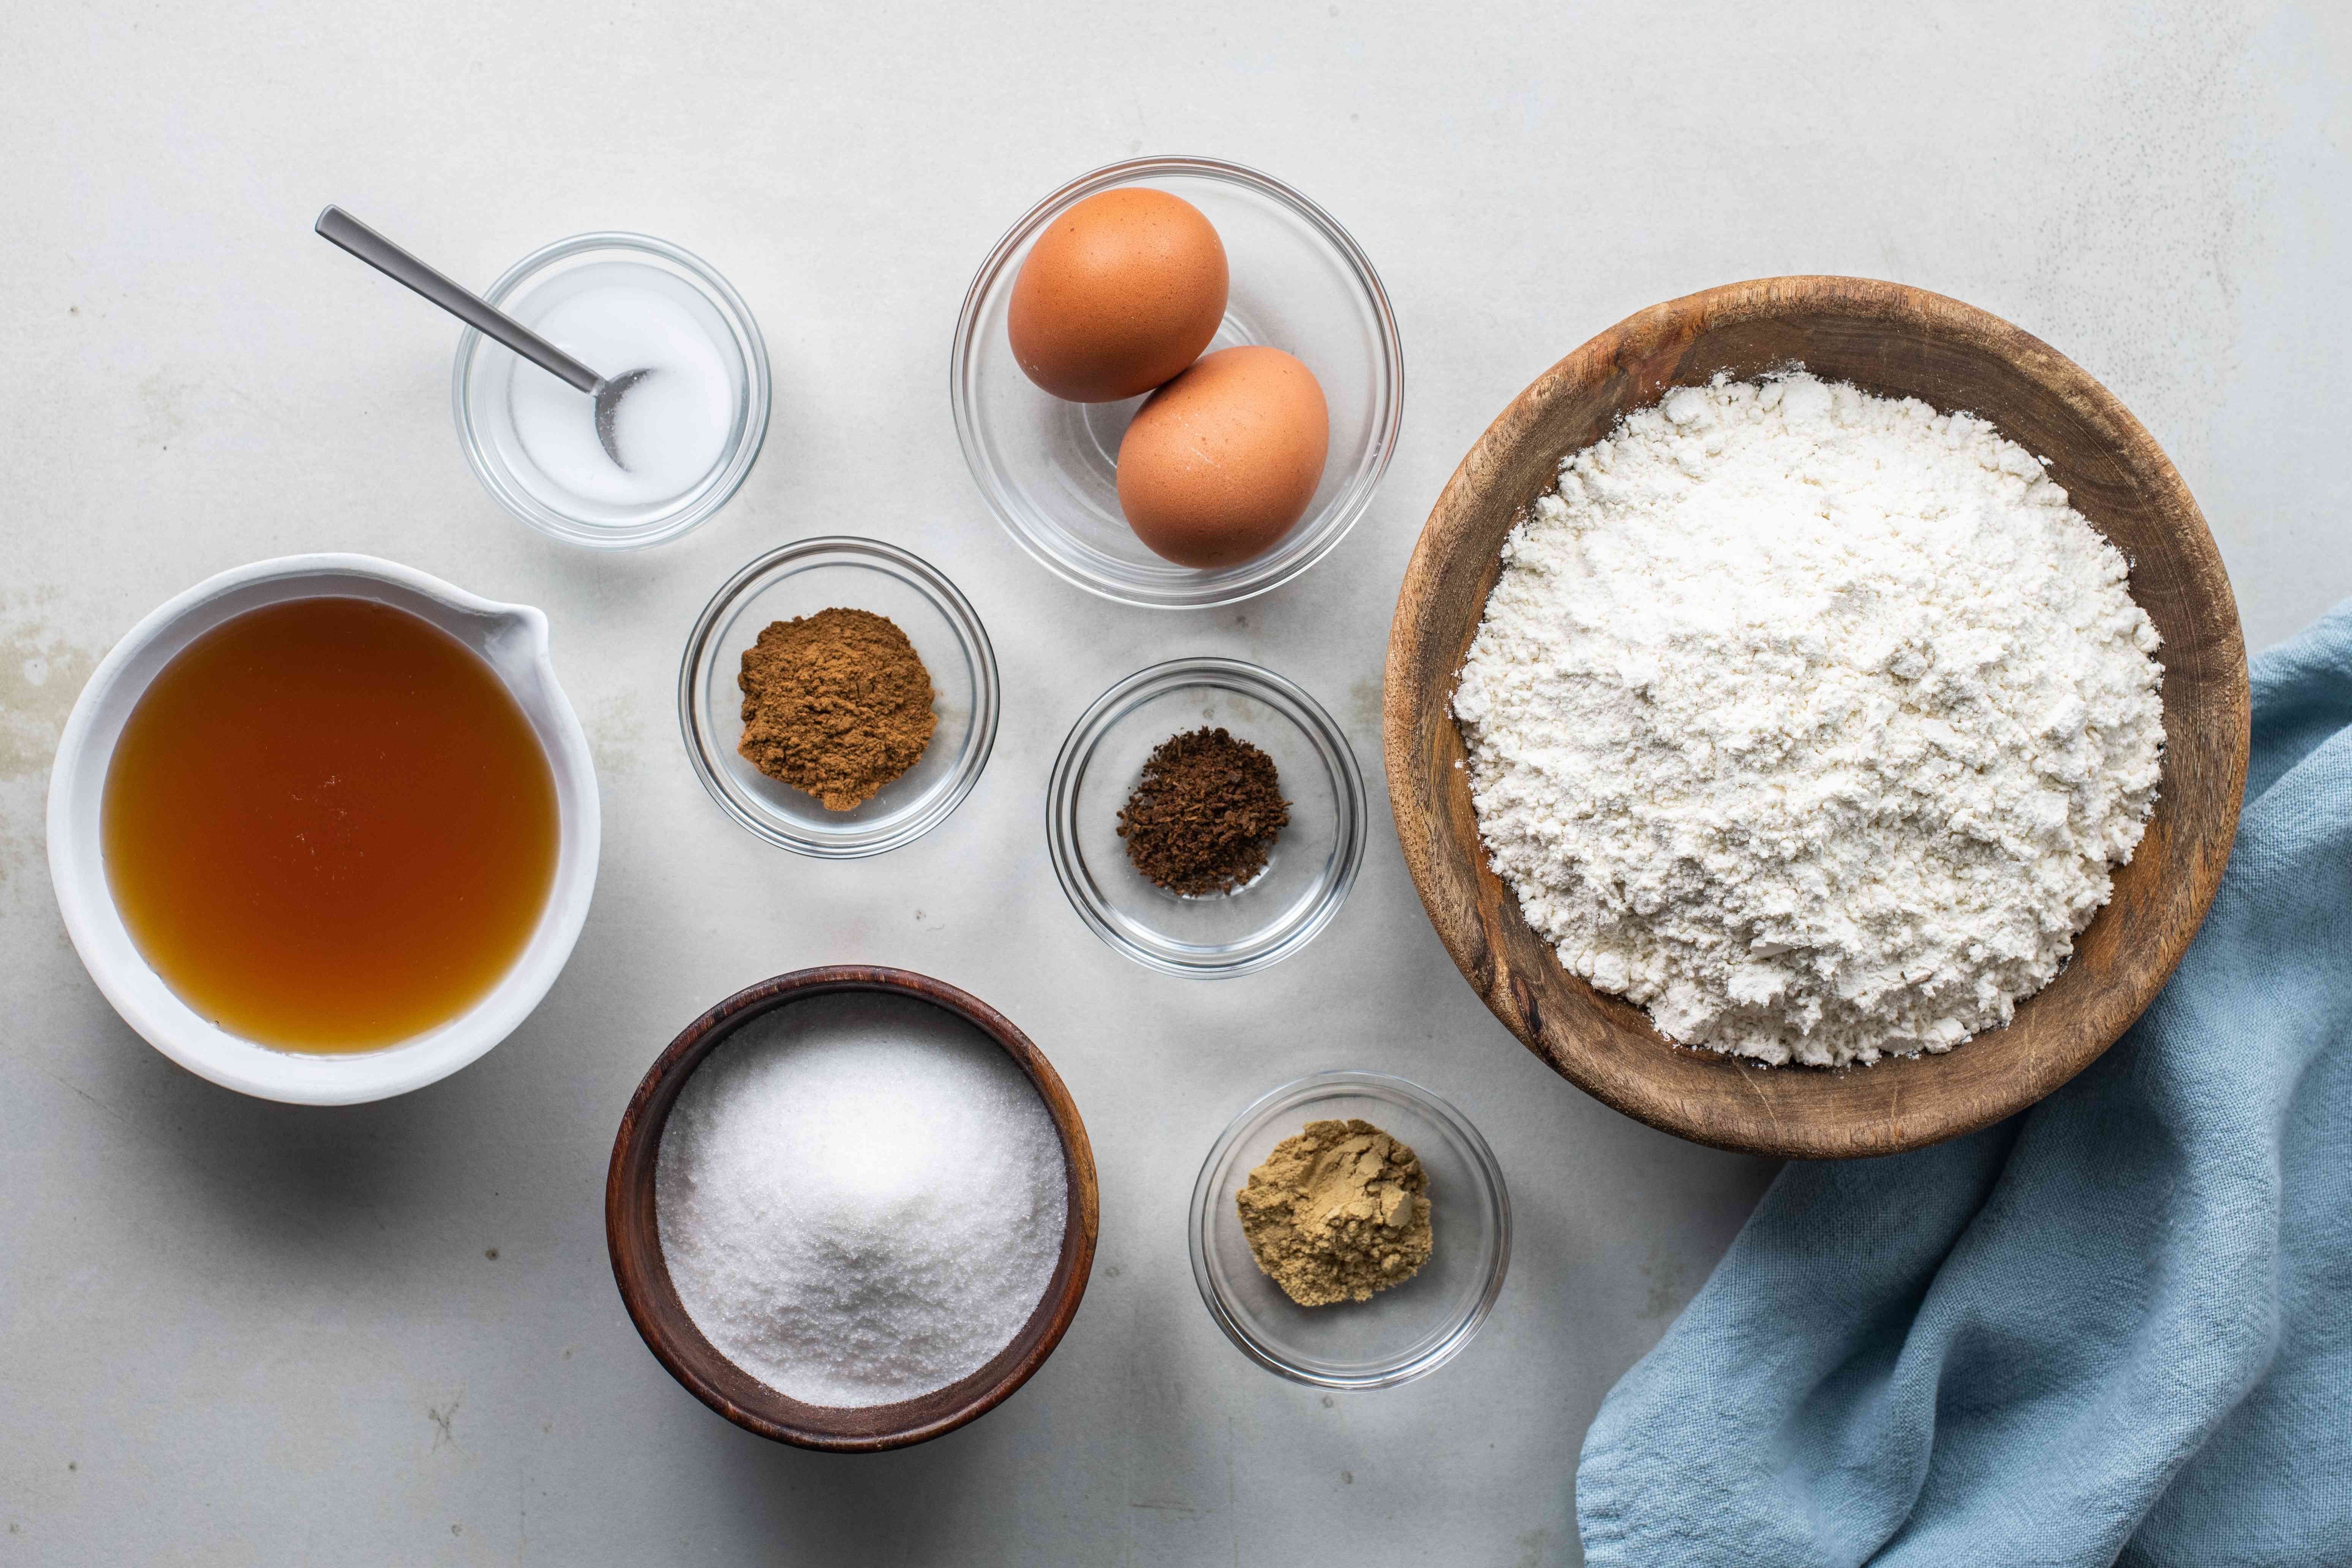 Ingredients for Polish gingerbread